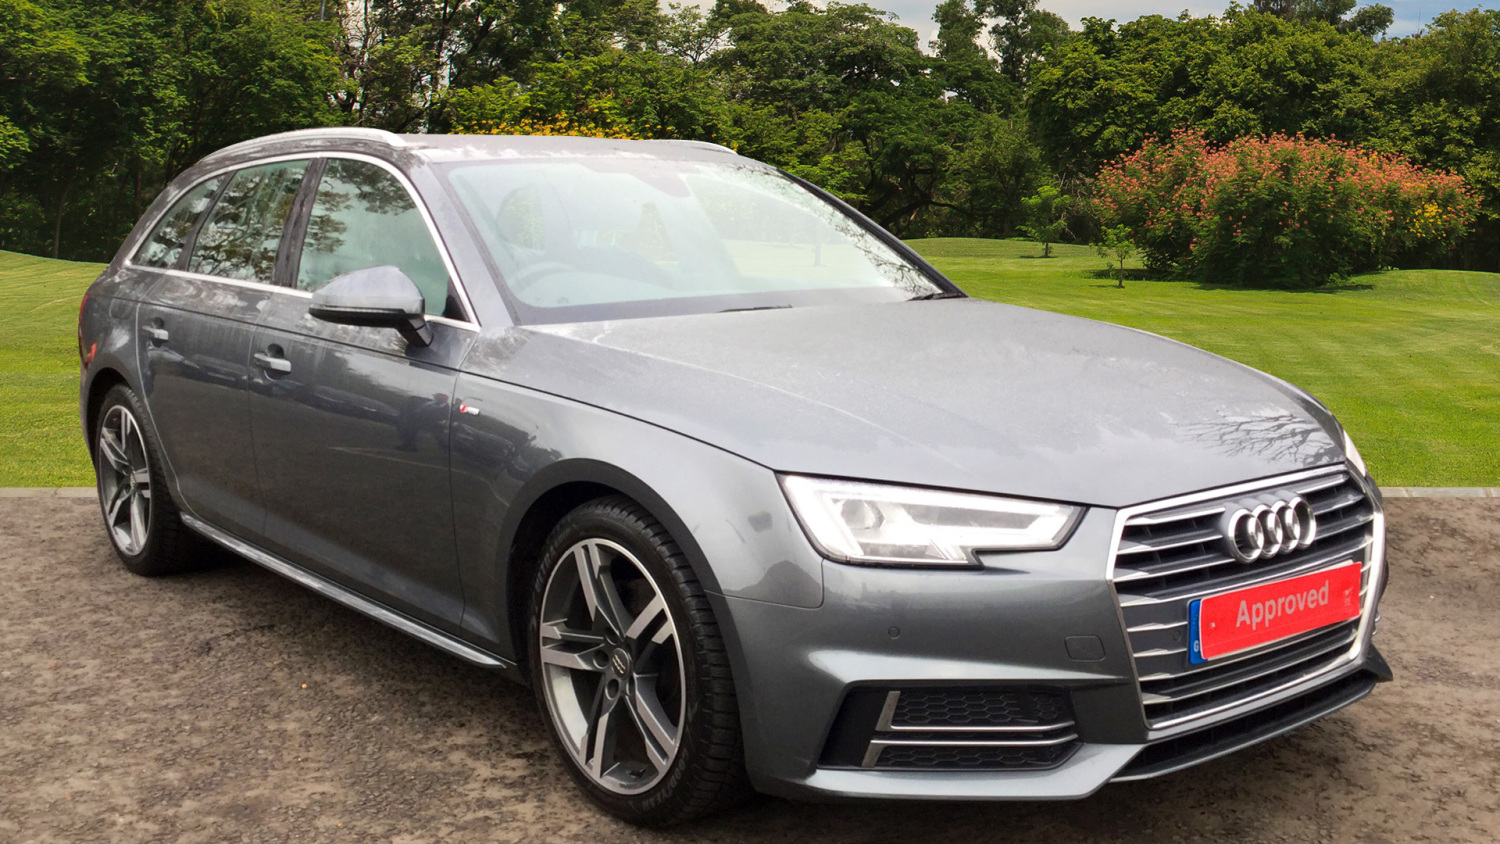 Audi Uk Used Car Offers